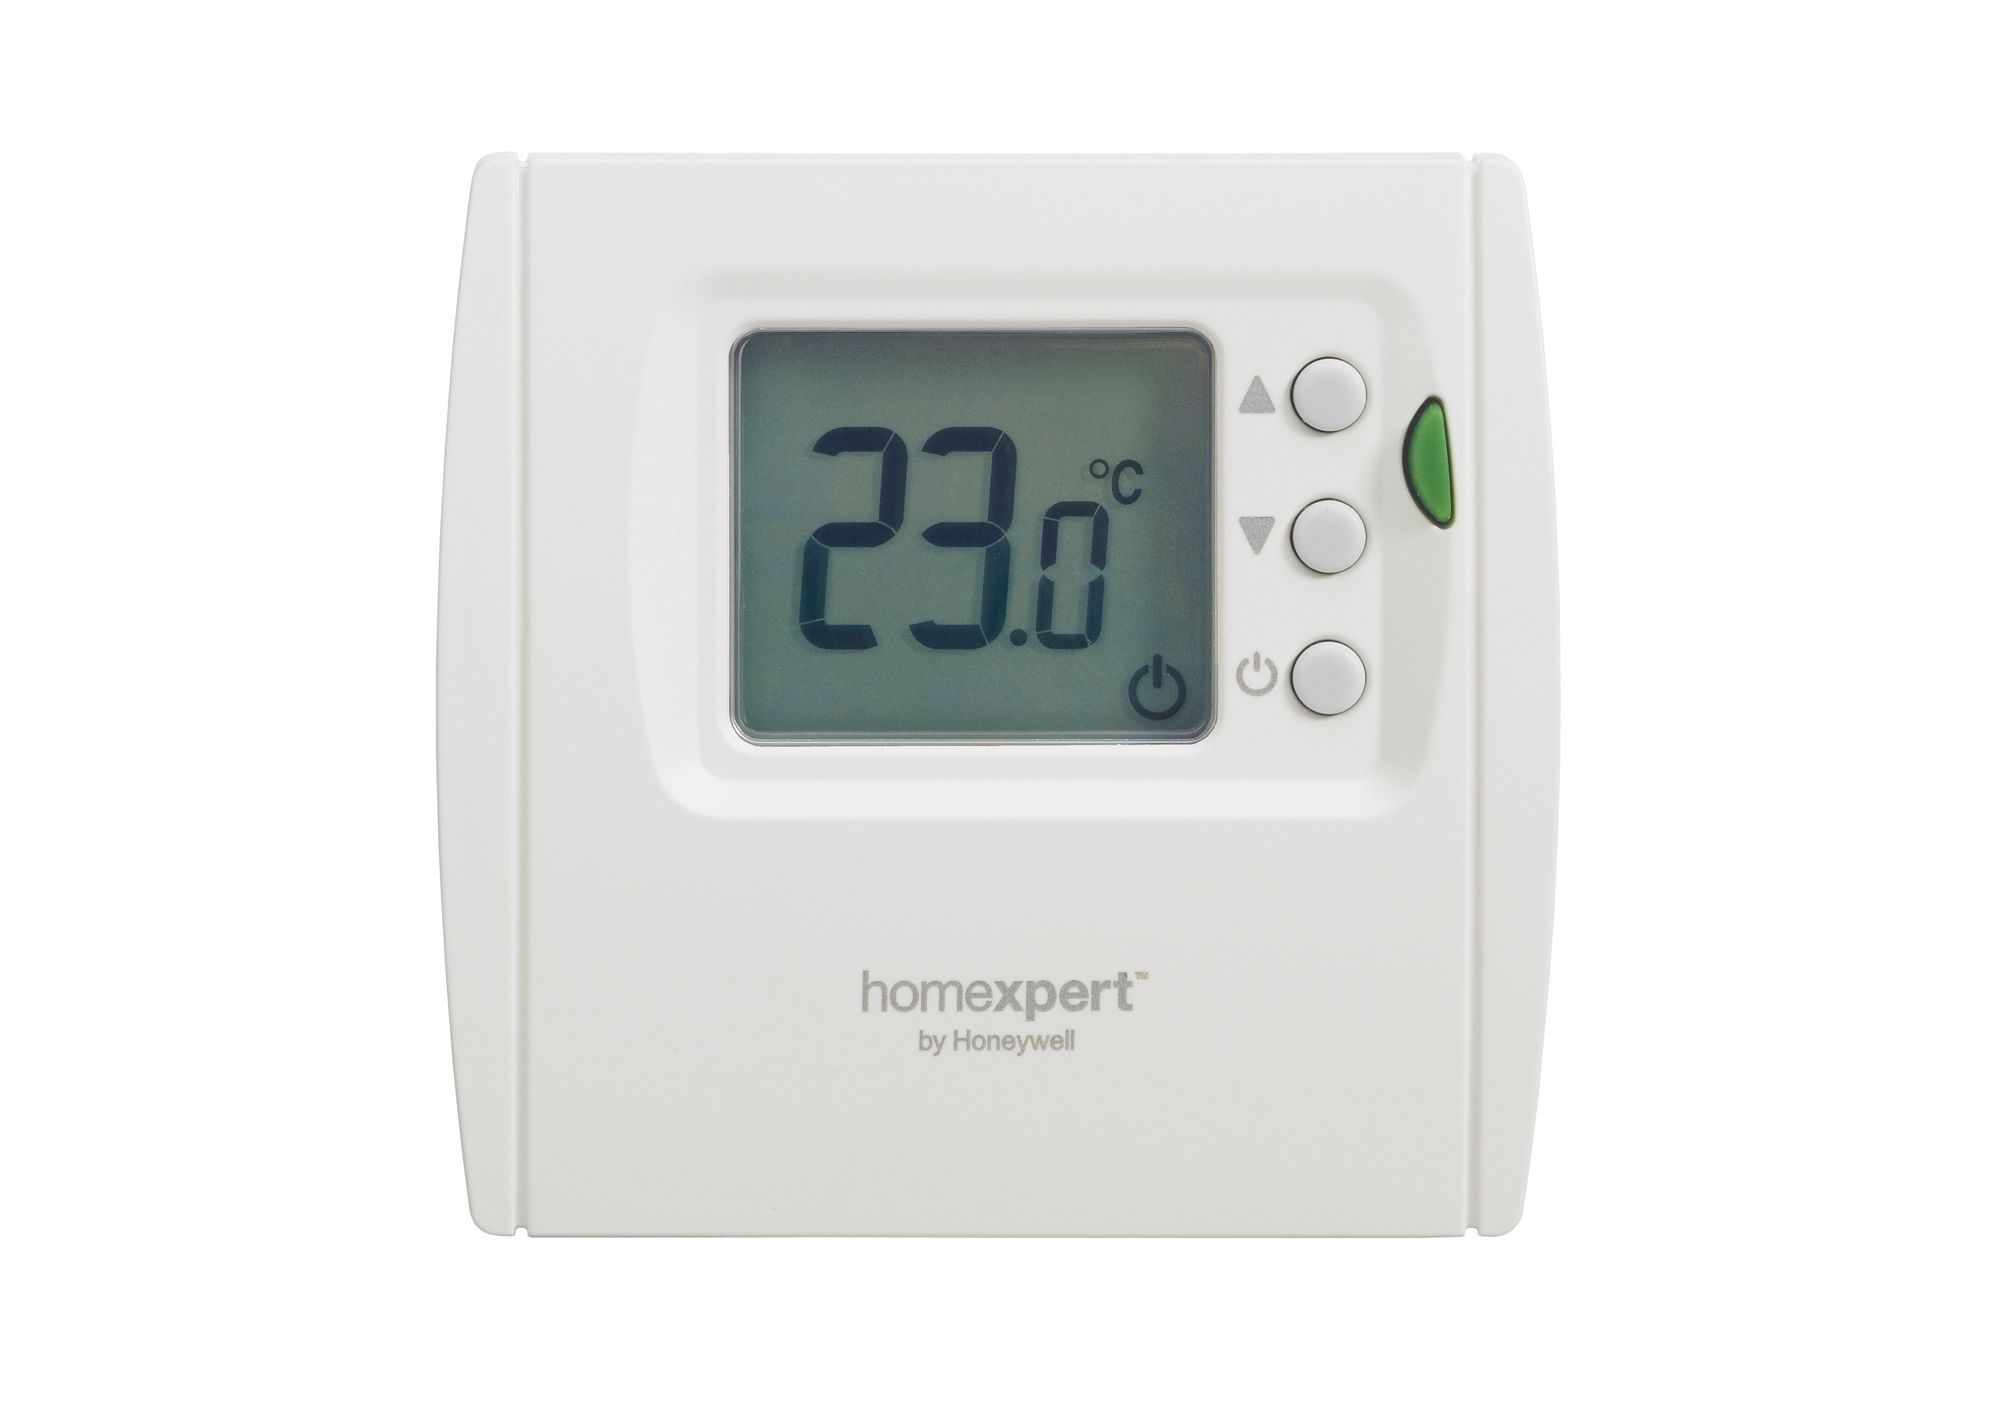 honeywell homeexpert digital thermostat departments. Black Bedroom Furniture Sets. Home Design Ideas